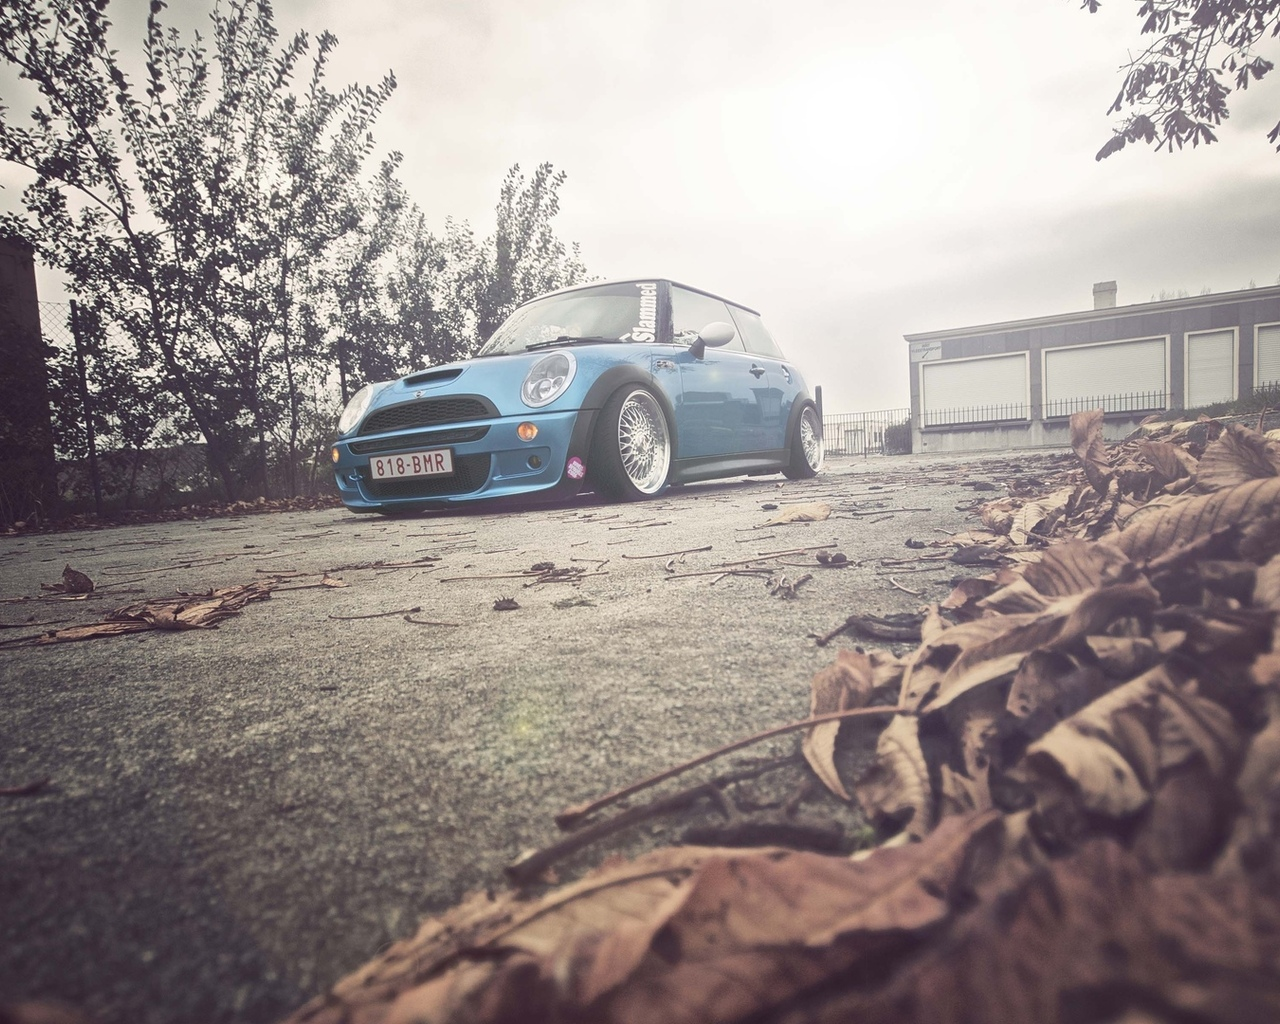 желтые, деревья, auto, wallpapers auto, cars, природа, листья, blue, city, mini cooper, осень